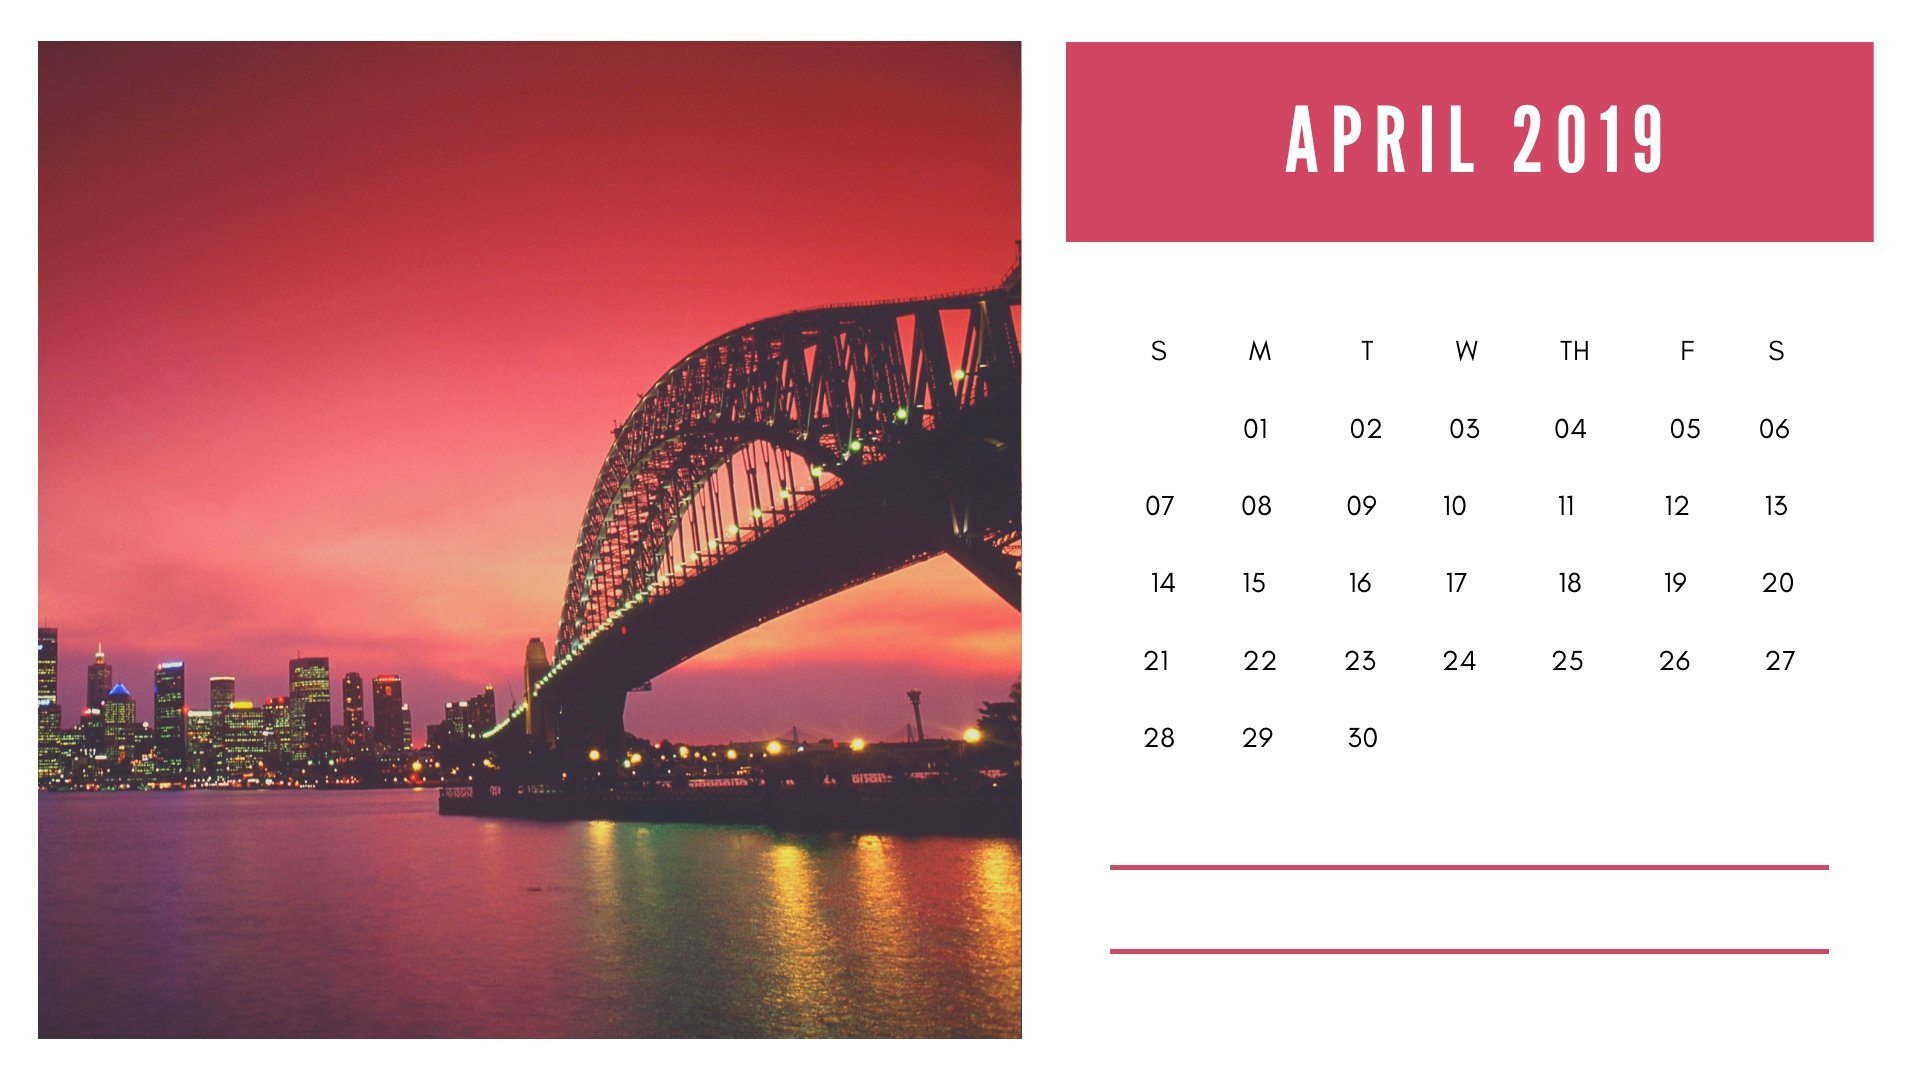 April 2019 HD Calendar Wallpapers